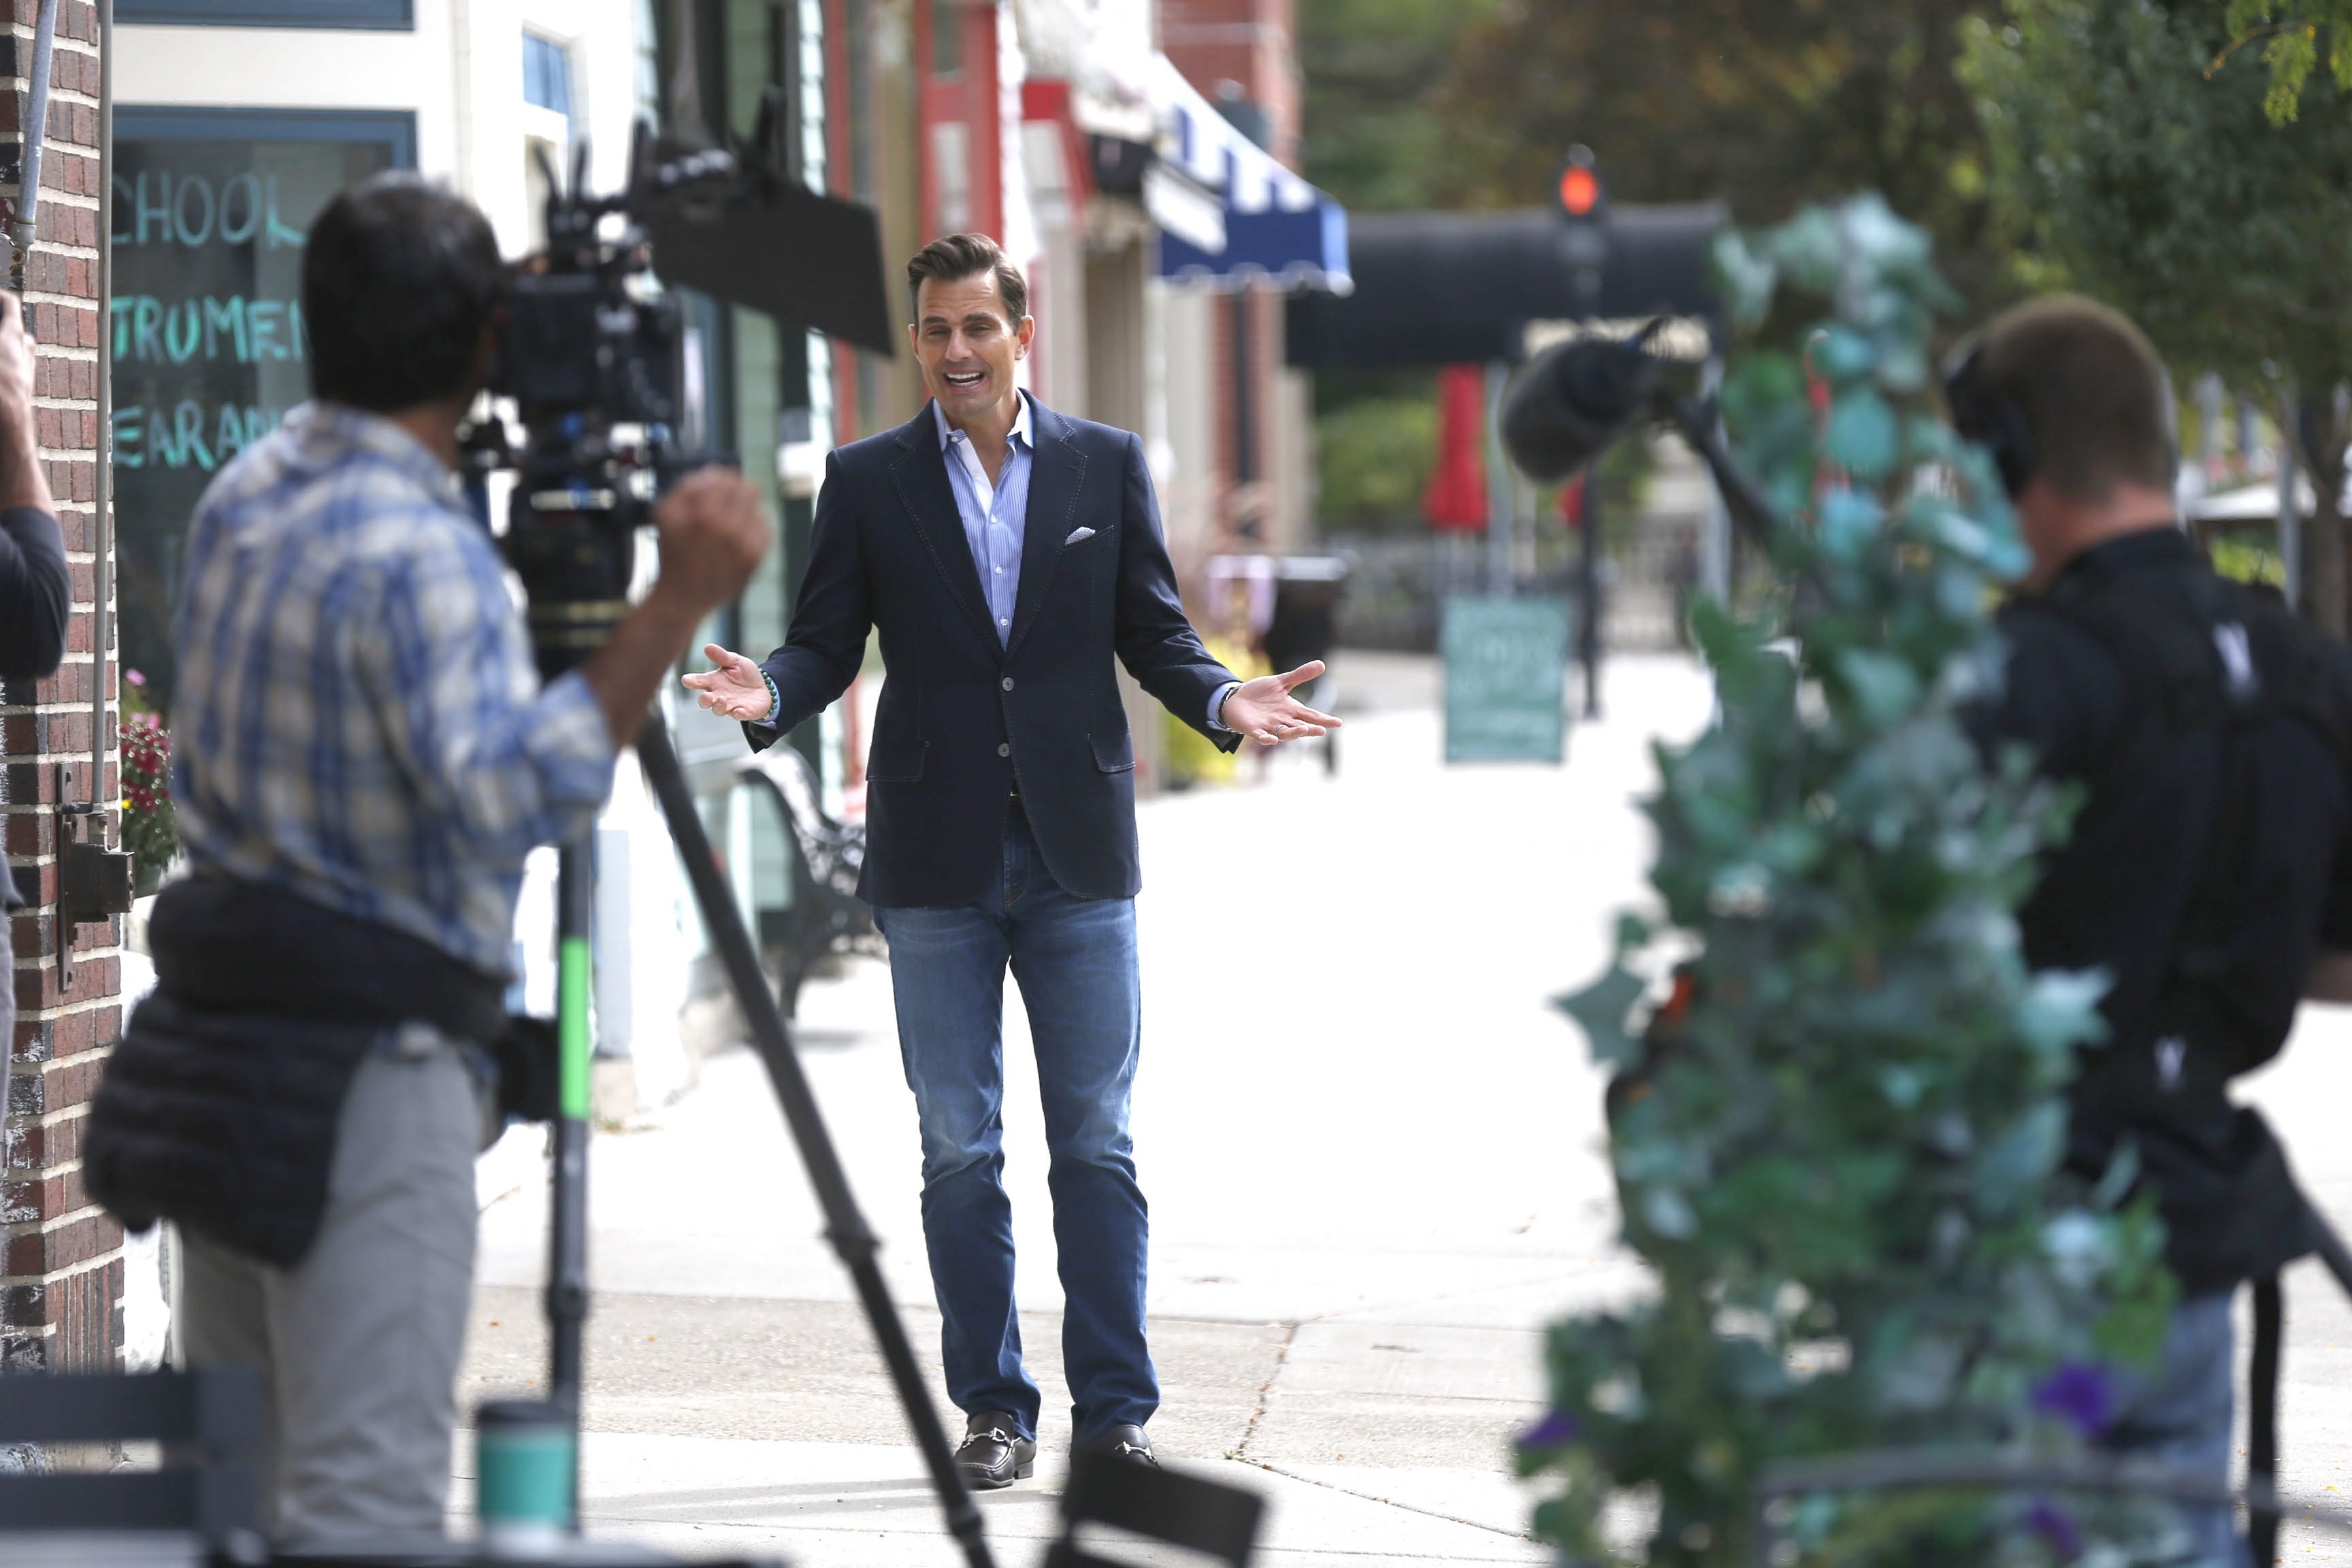 """This is probably one of the most vibrant Main Streets I've seen in a long time,"" said Bill Rancic, who was in East Aurora last week to promote Vidler's bid to win a 30-second commercial during the Super Bowl telecast."